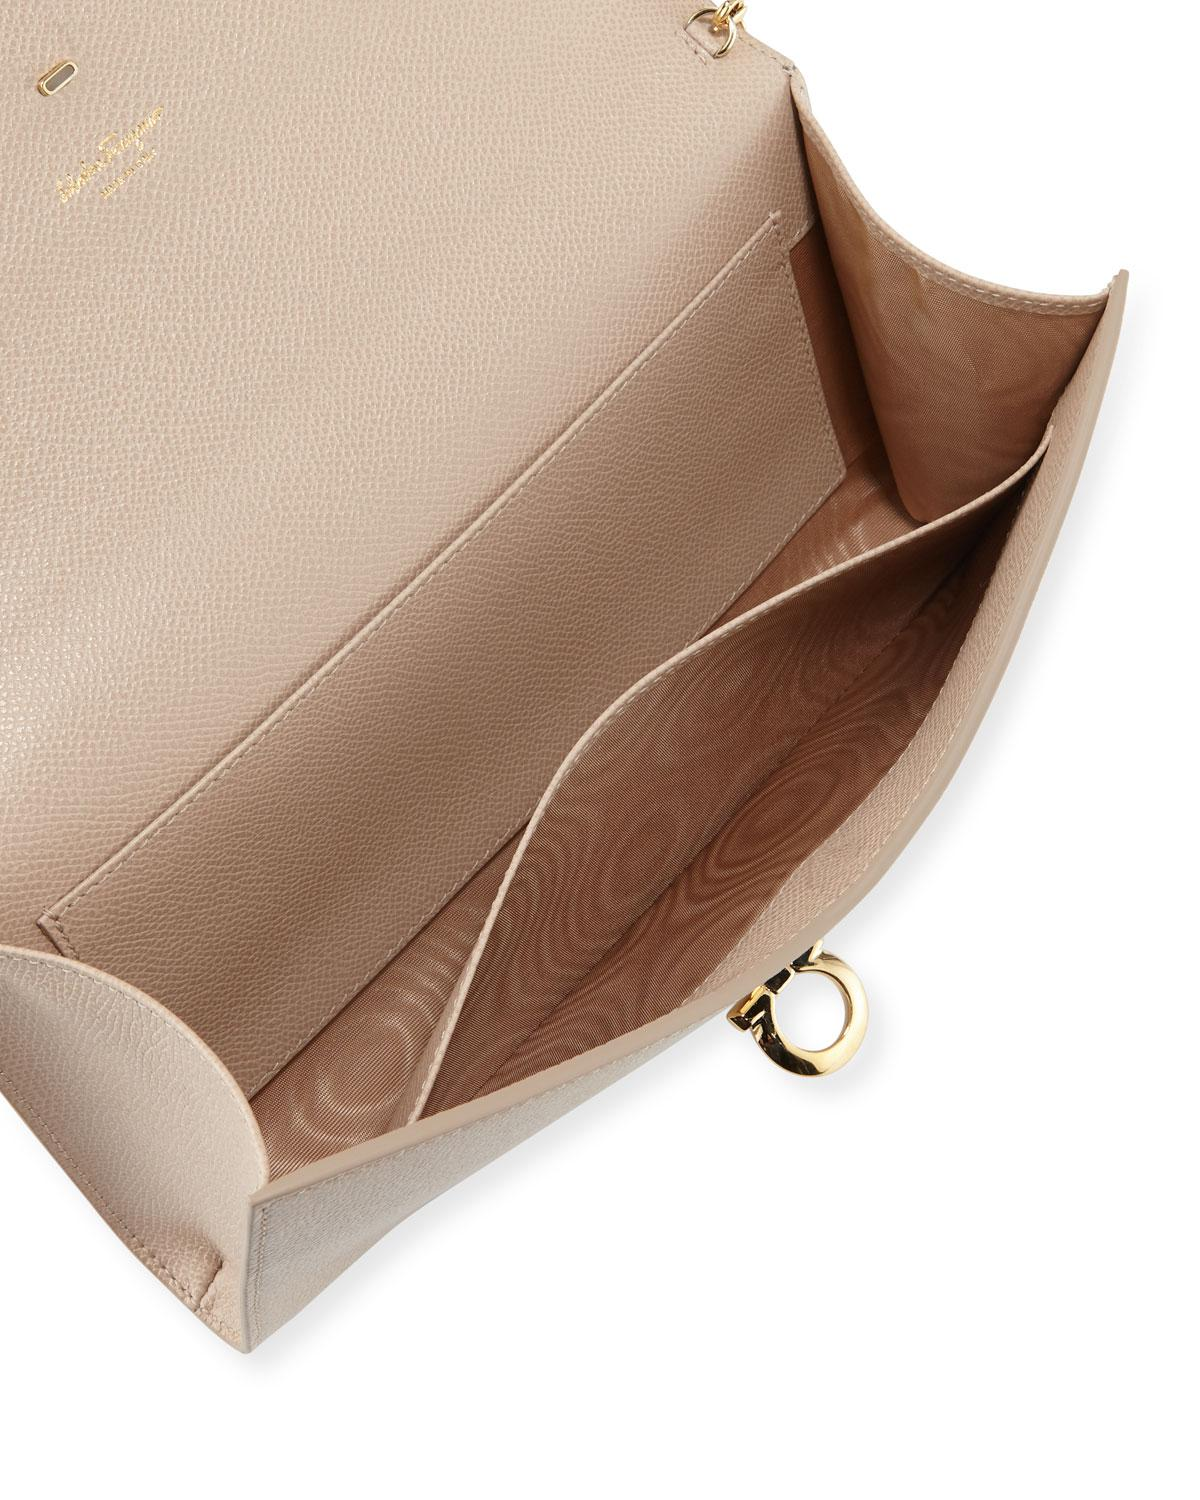 7b7759a3a516 Lyst - Ferragamo Gancini Icona Mini Bag in Natural